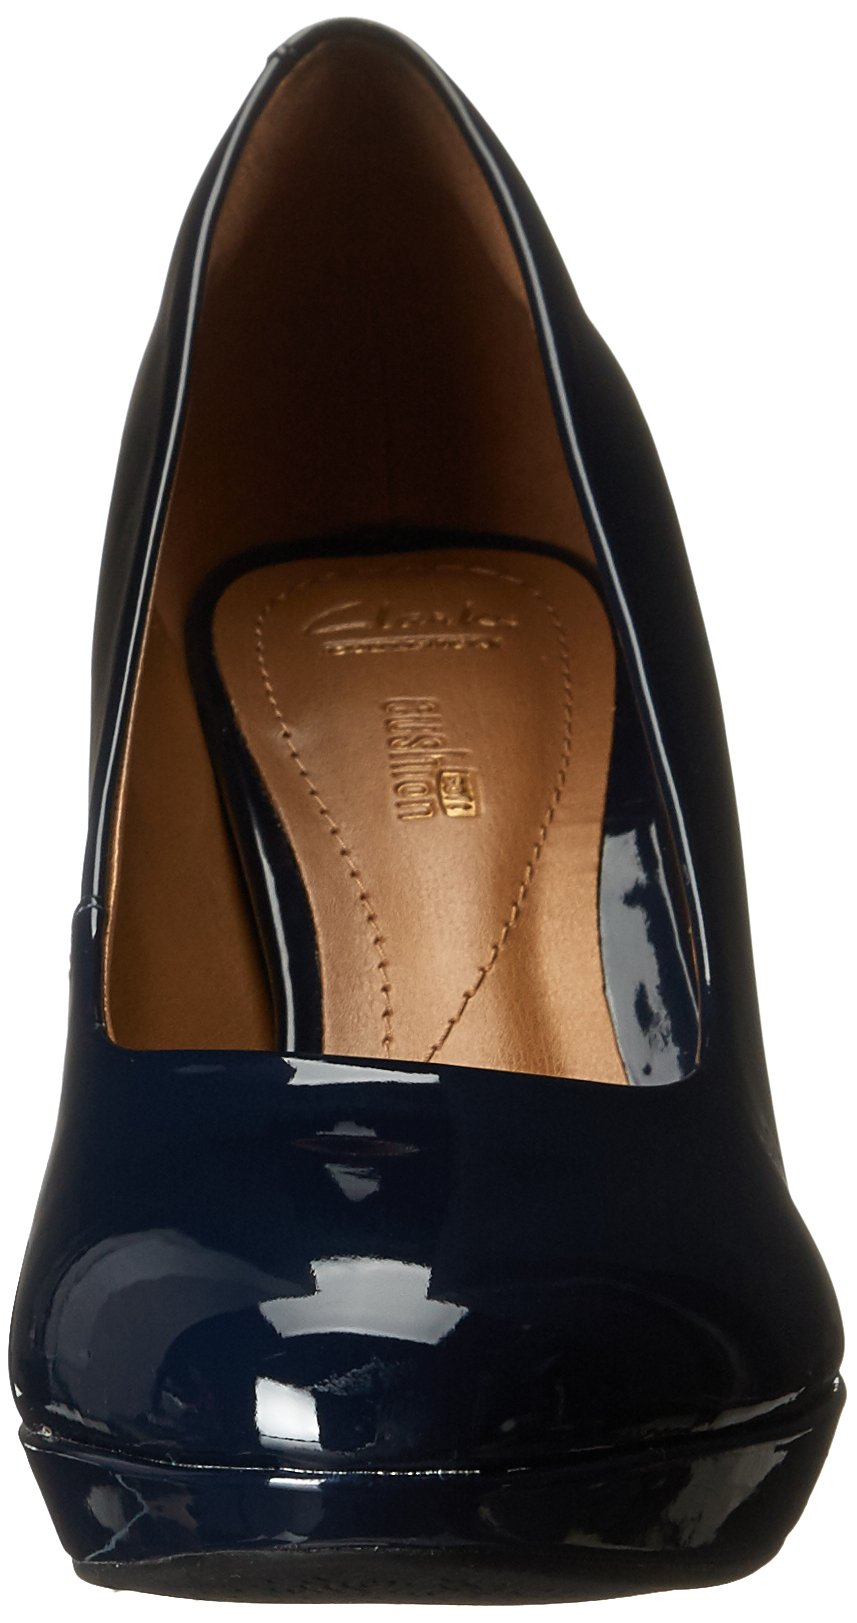 CLARKS Women's Brier Dolly Platform Pump, Navy, 11 W US by CLARKS (Image #4)